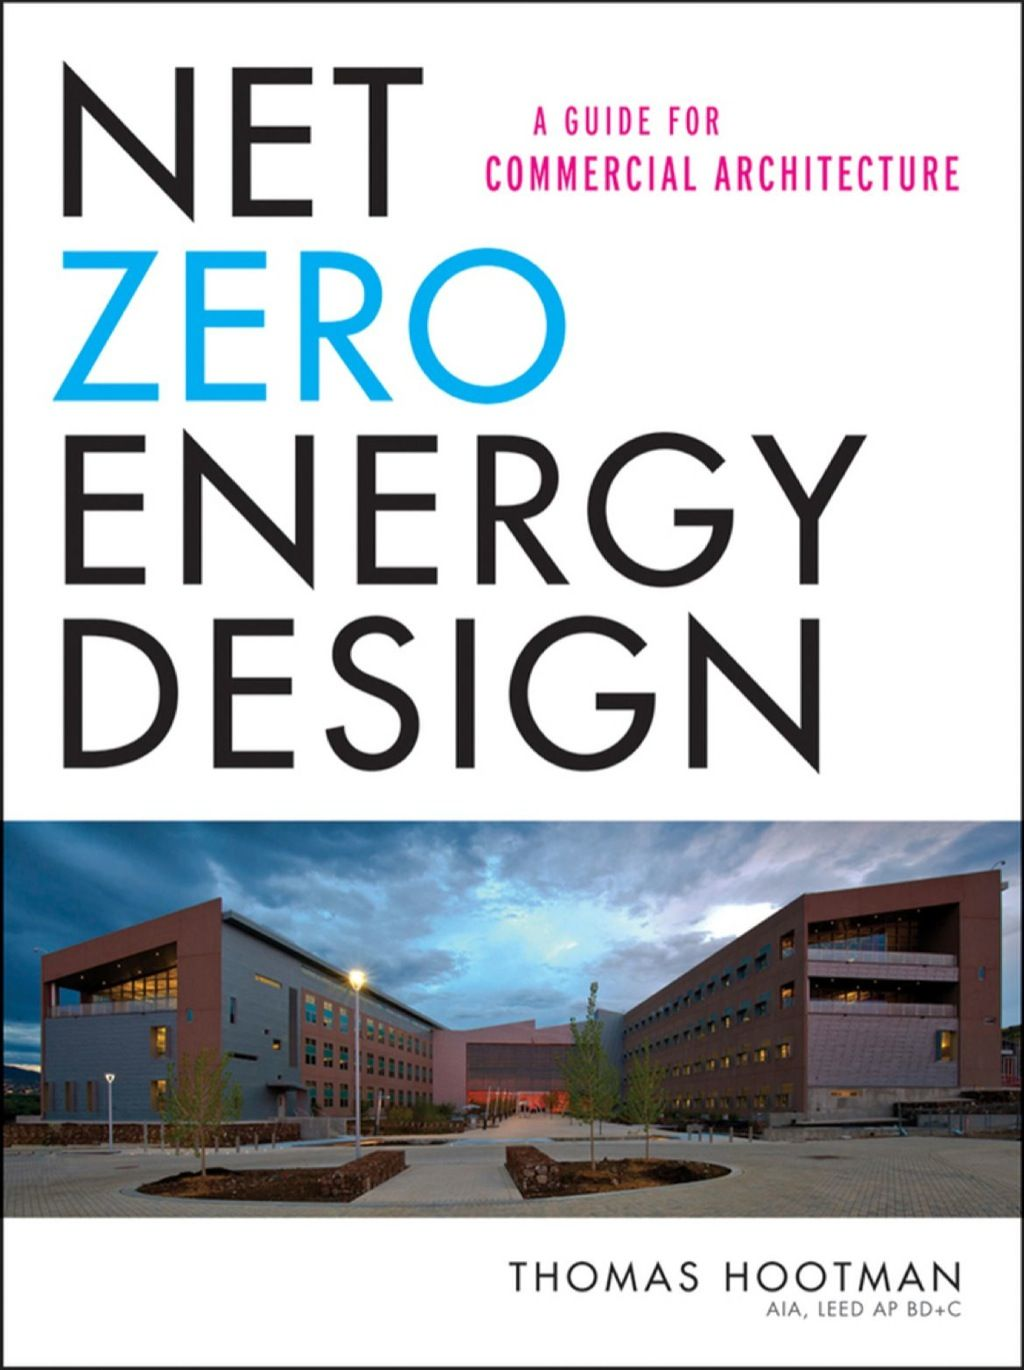 Net Zero Energy Design: A Guide for Commercial Architecture (eBook Rental)